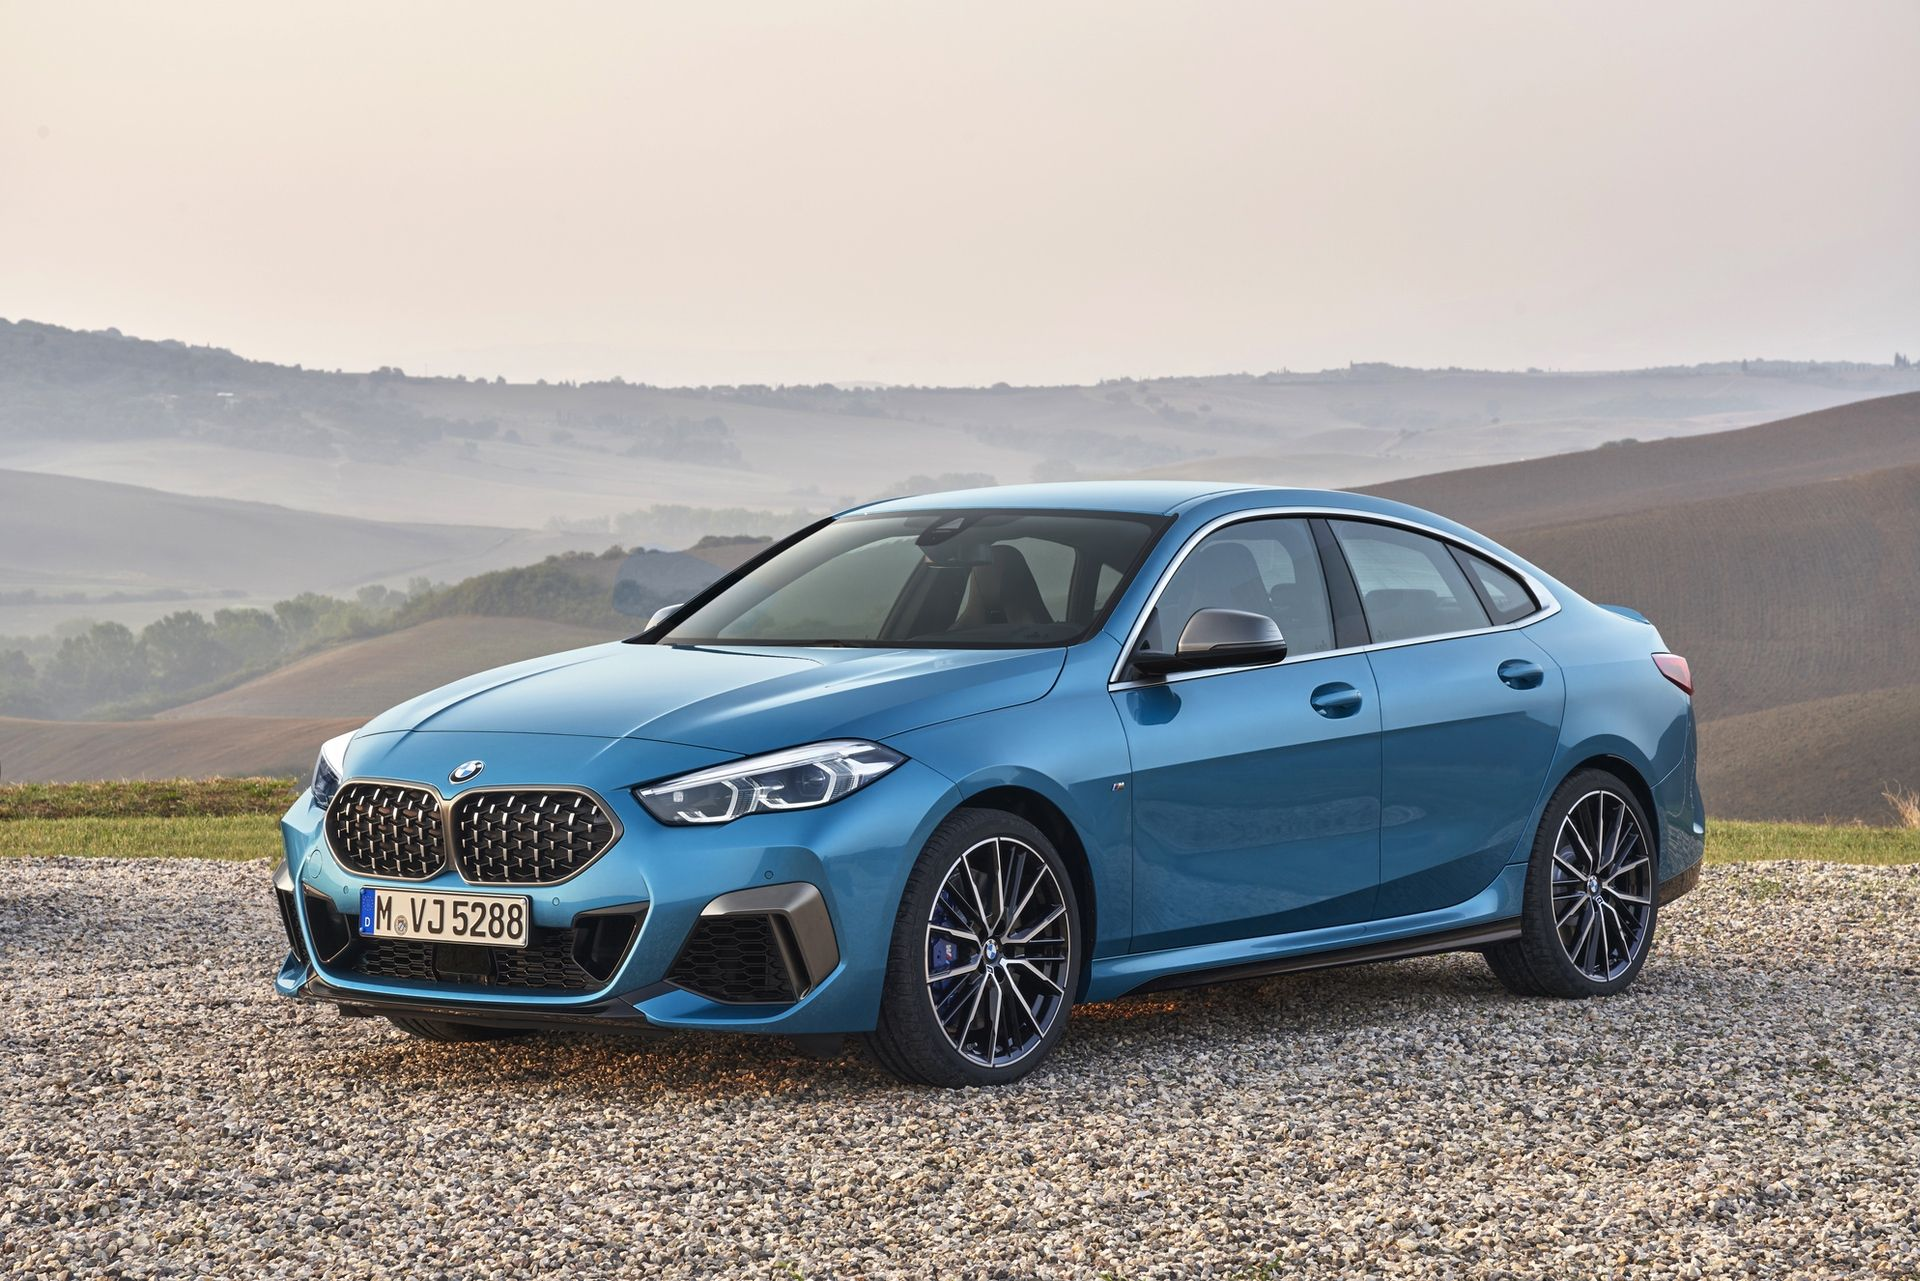 Bmw 2 Series Gran Coupe Is The Most Beautiful Car Of The Year